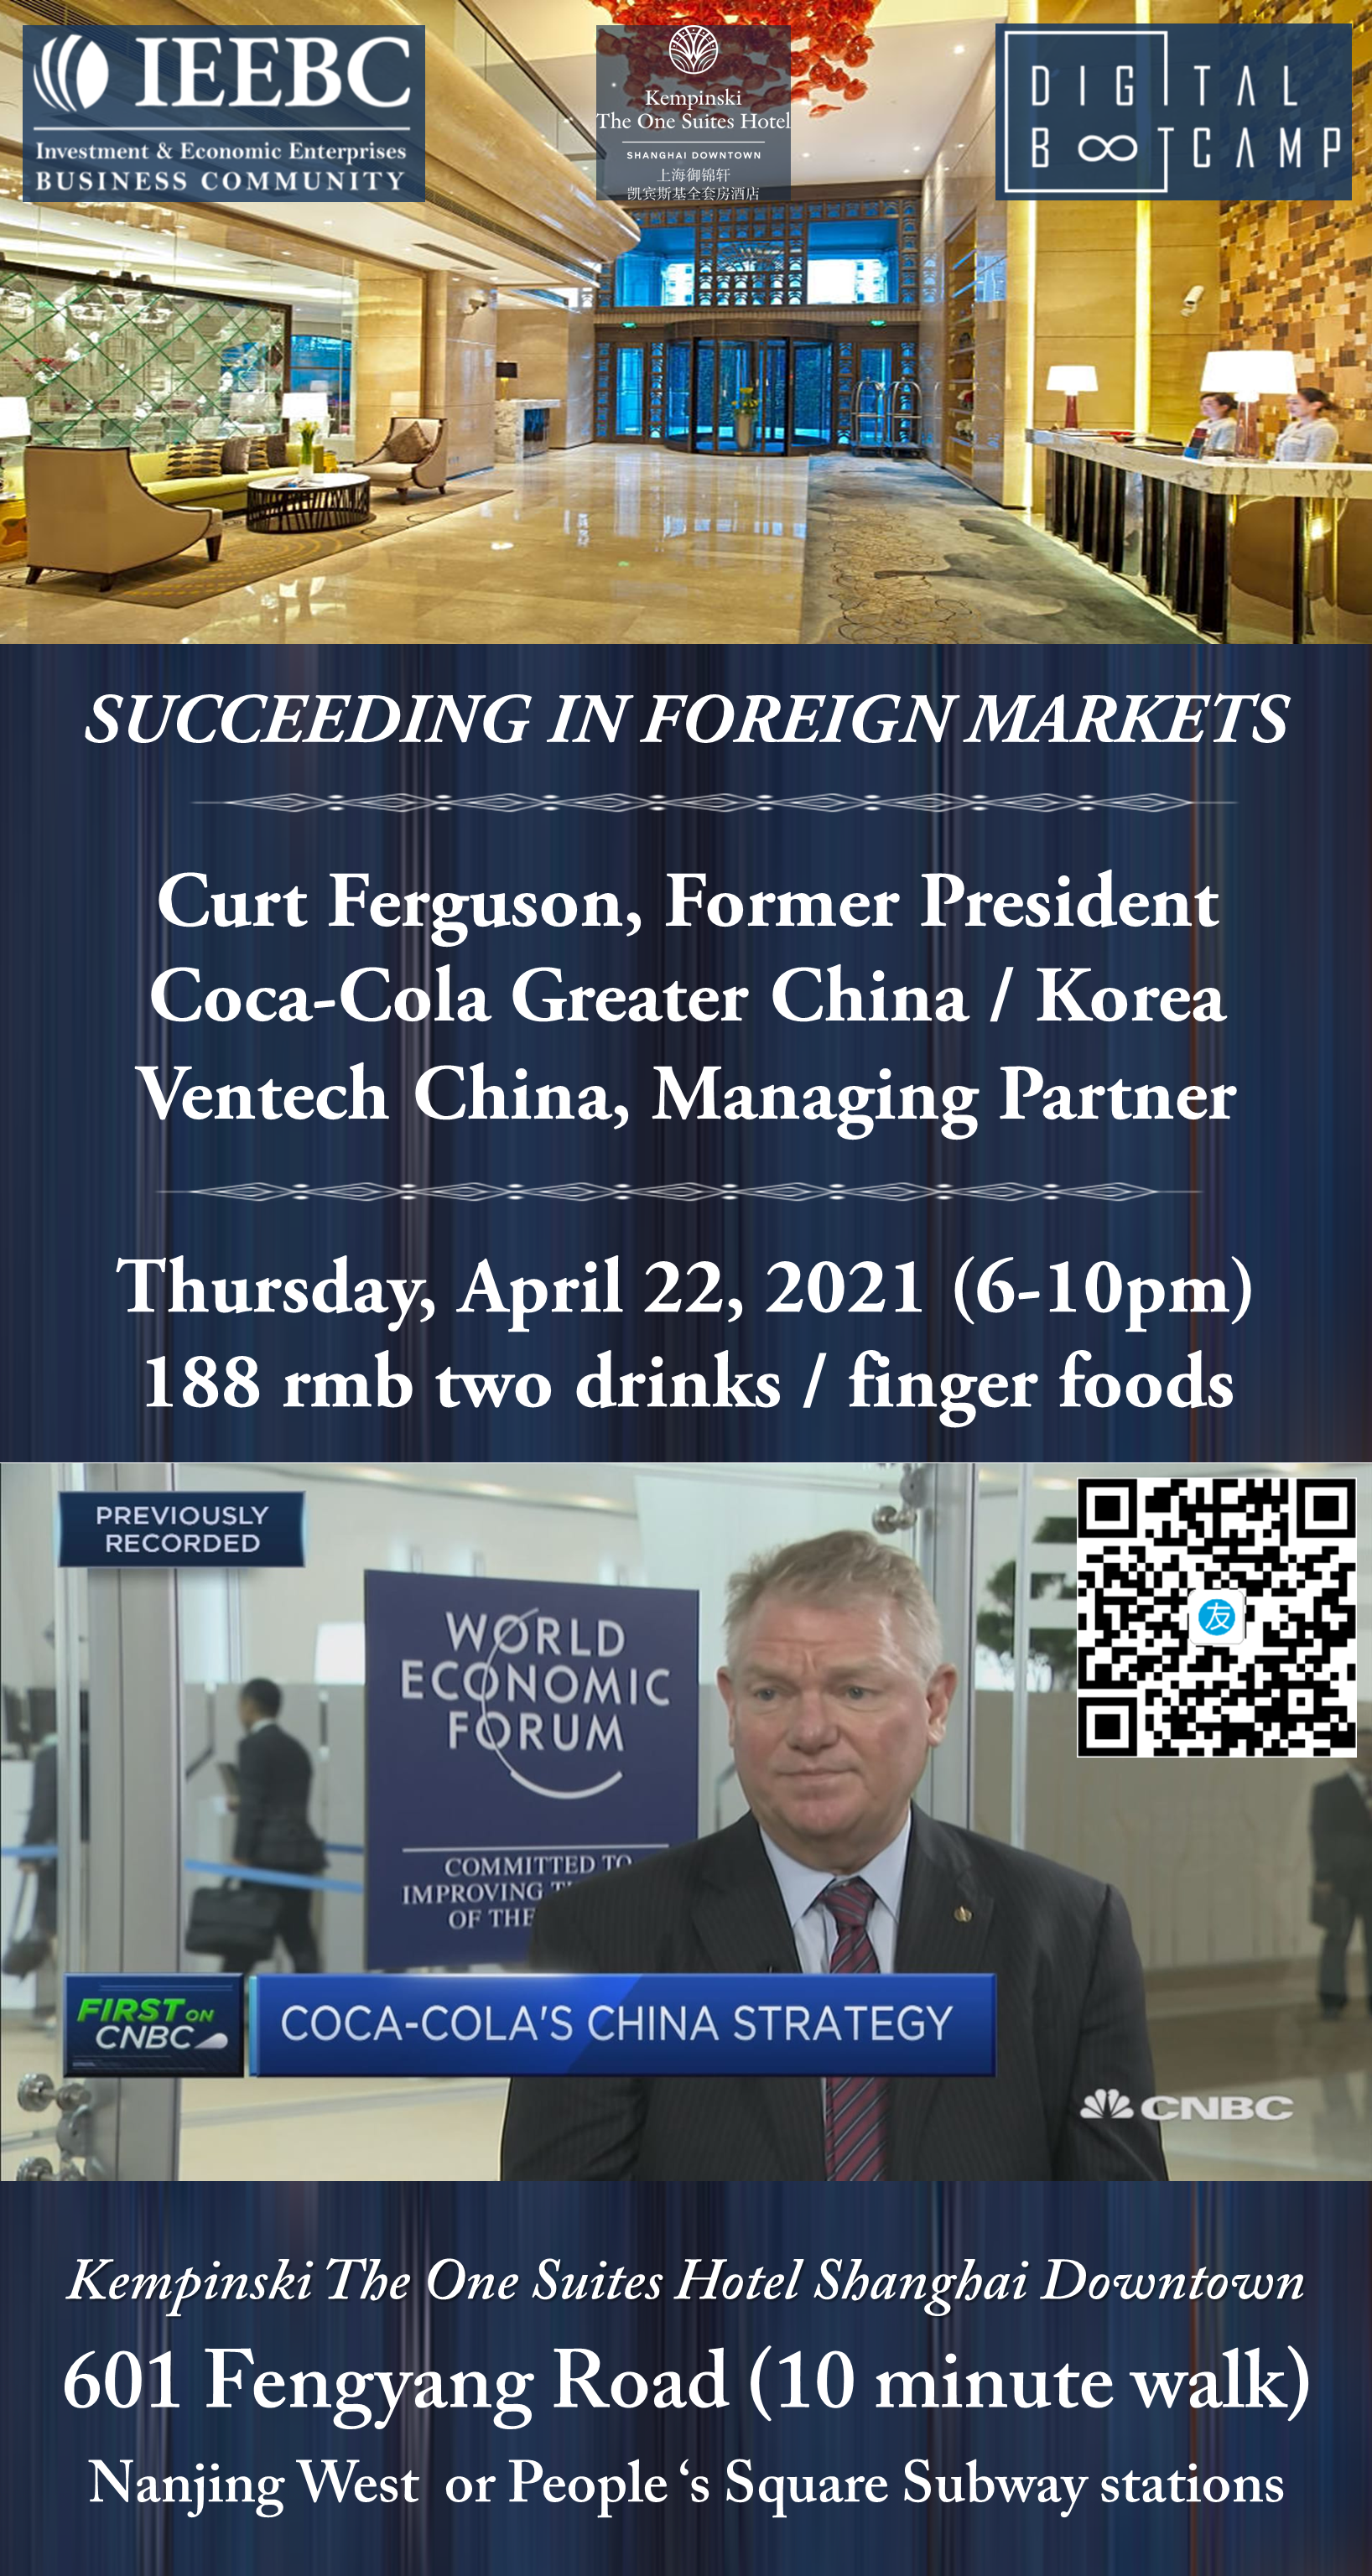 April 22nd Succeeding in foreign markets